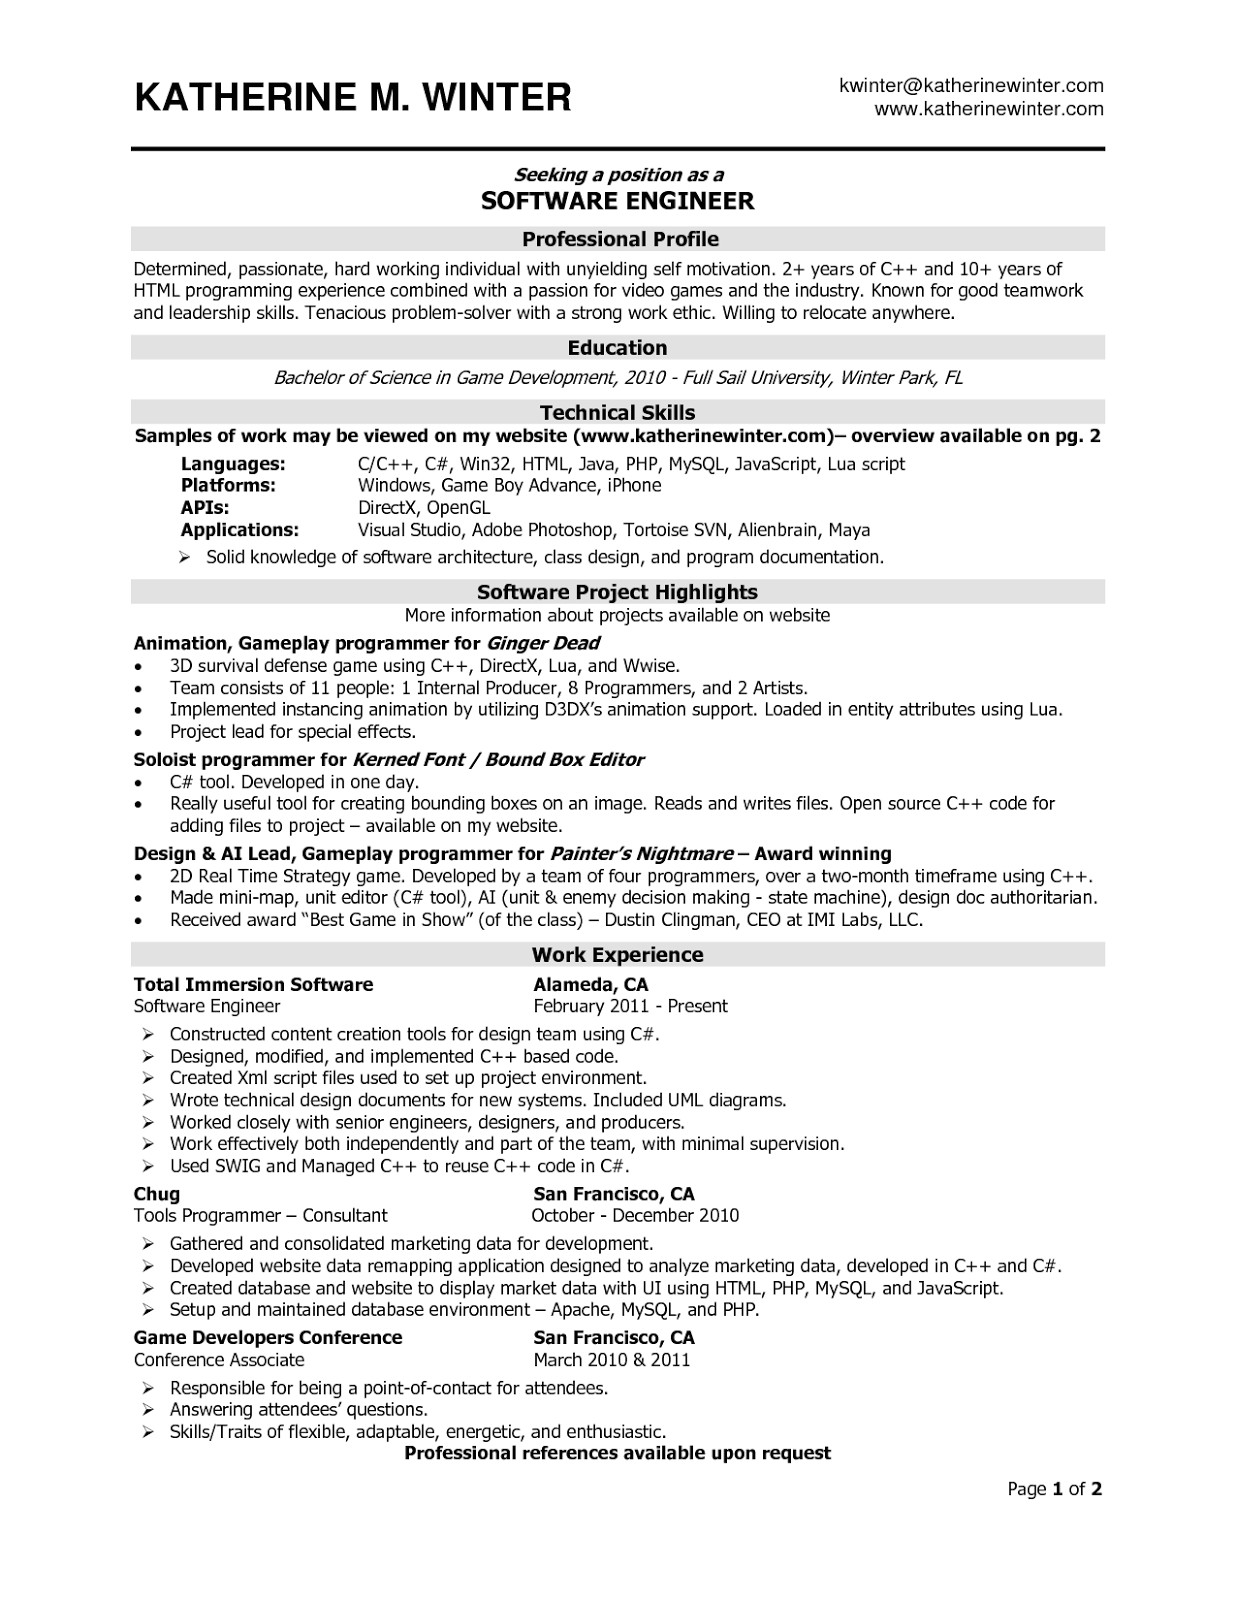 Sample Resume for 2 Years Experienced software Engineer Sample Resume for software Engineer with 2 Years